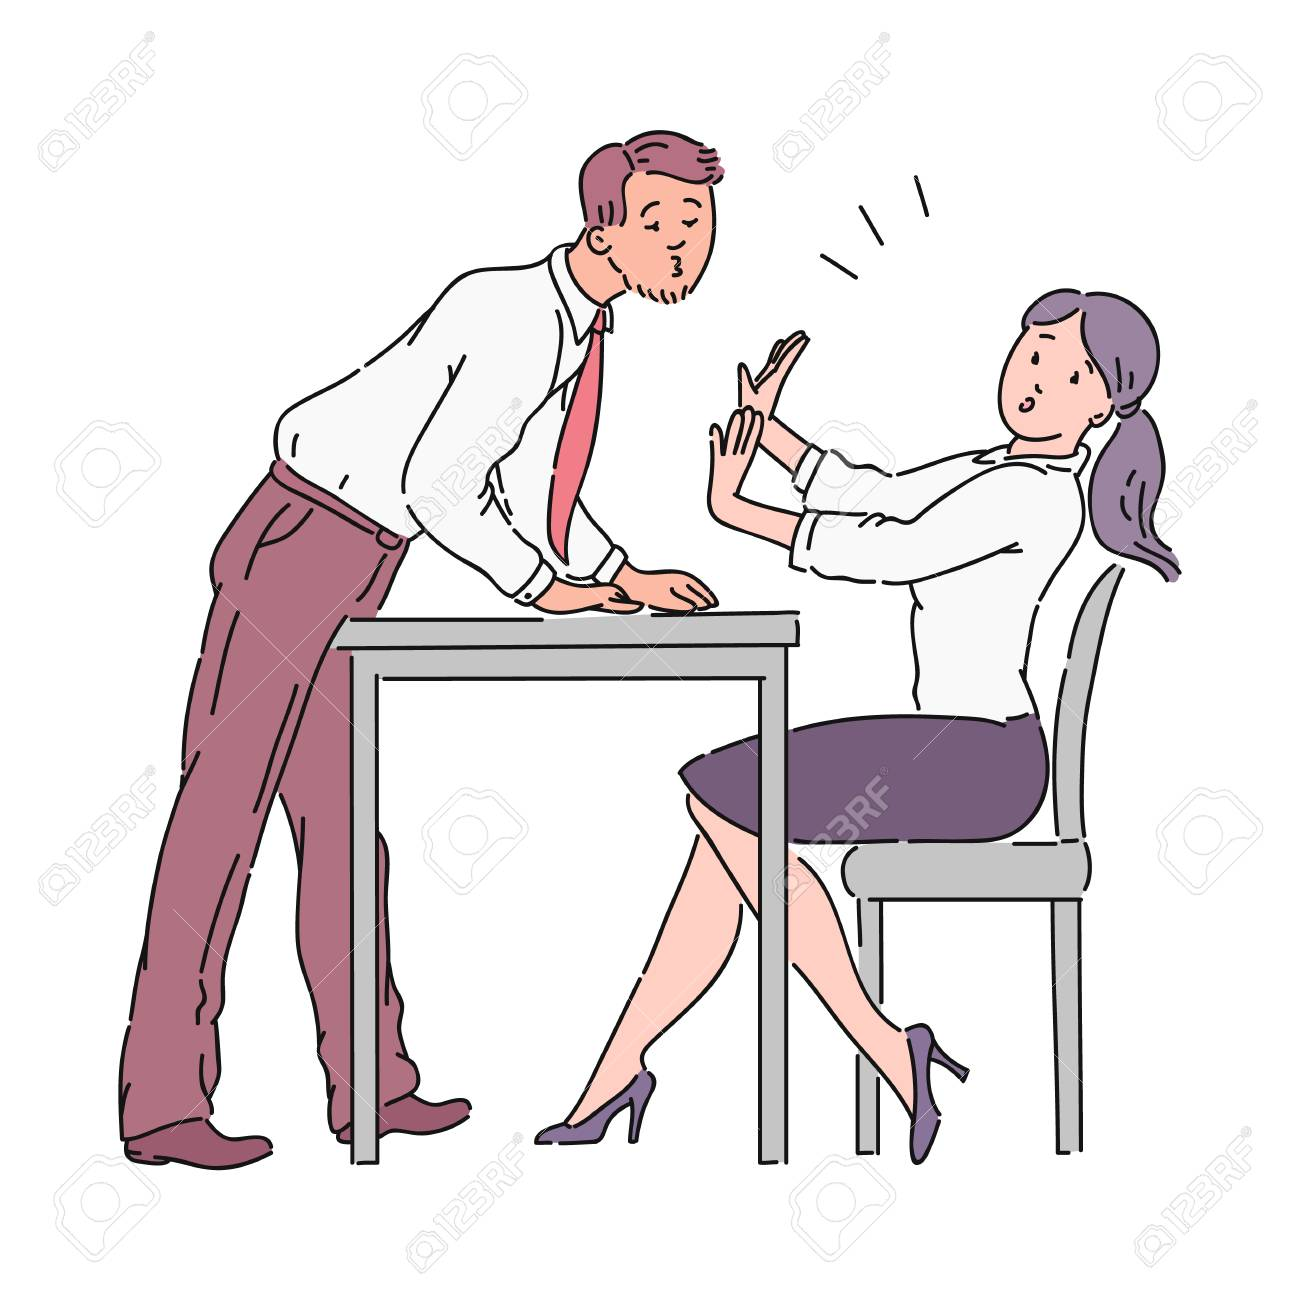 The man is trying to kiss the girl across the office table, harassment at work. Harassment of a boss or colleague in the workplace in the office. Violence vector cartoon illustration. - 122280321